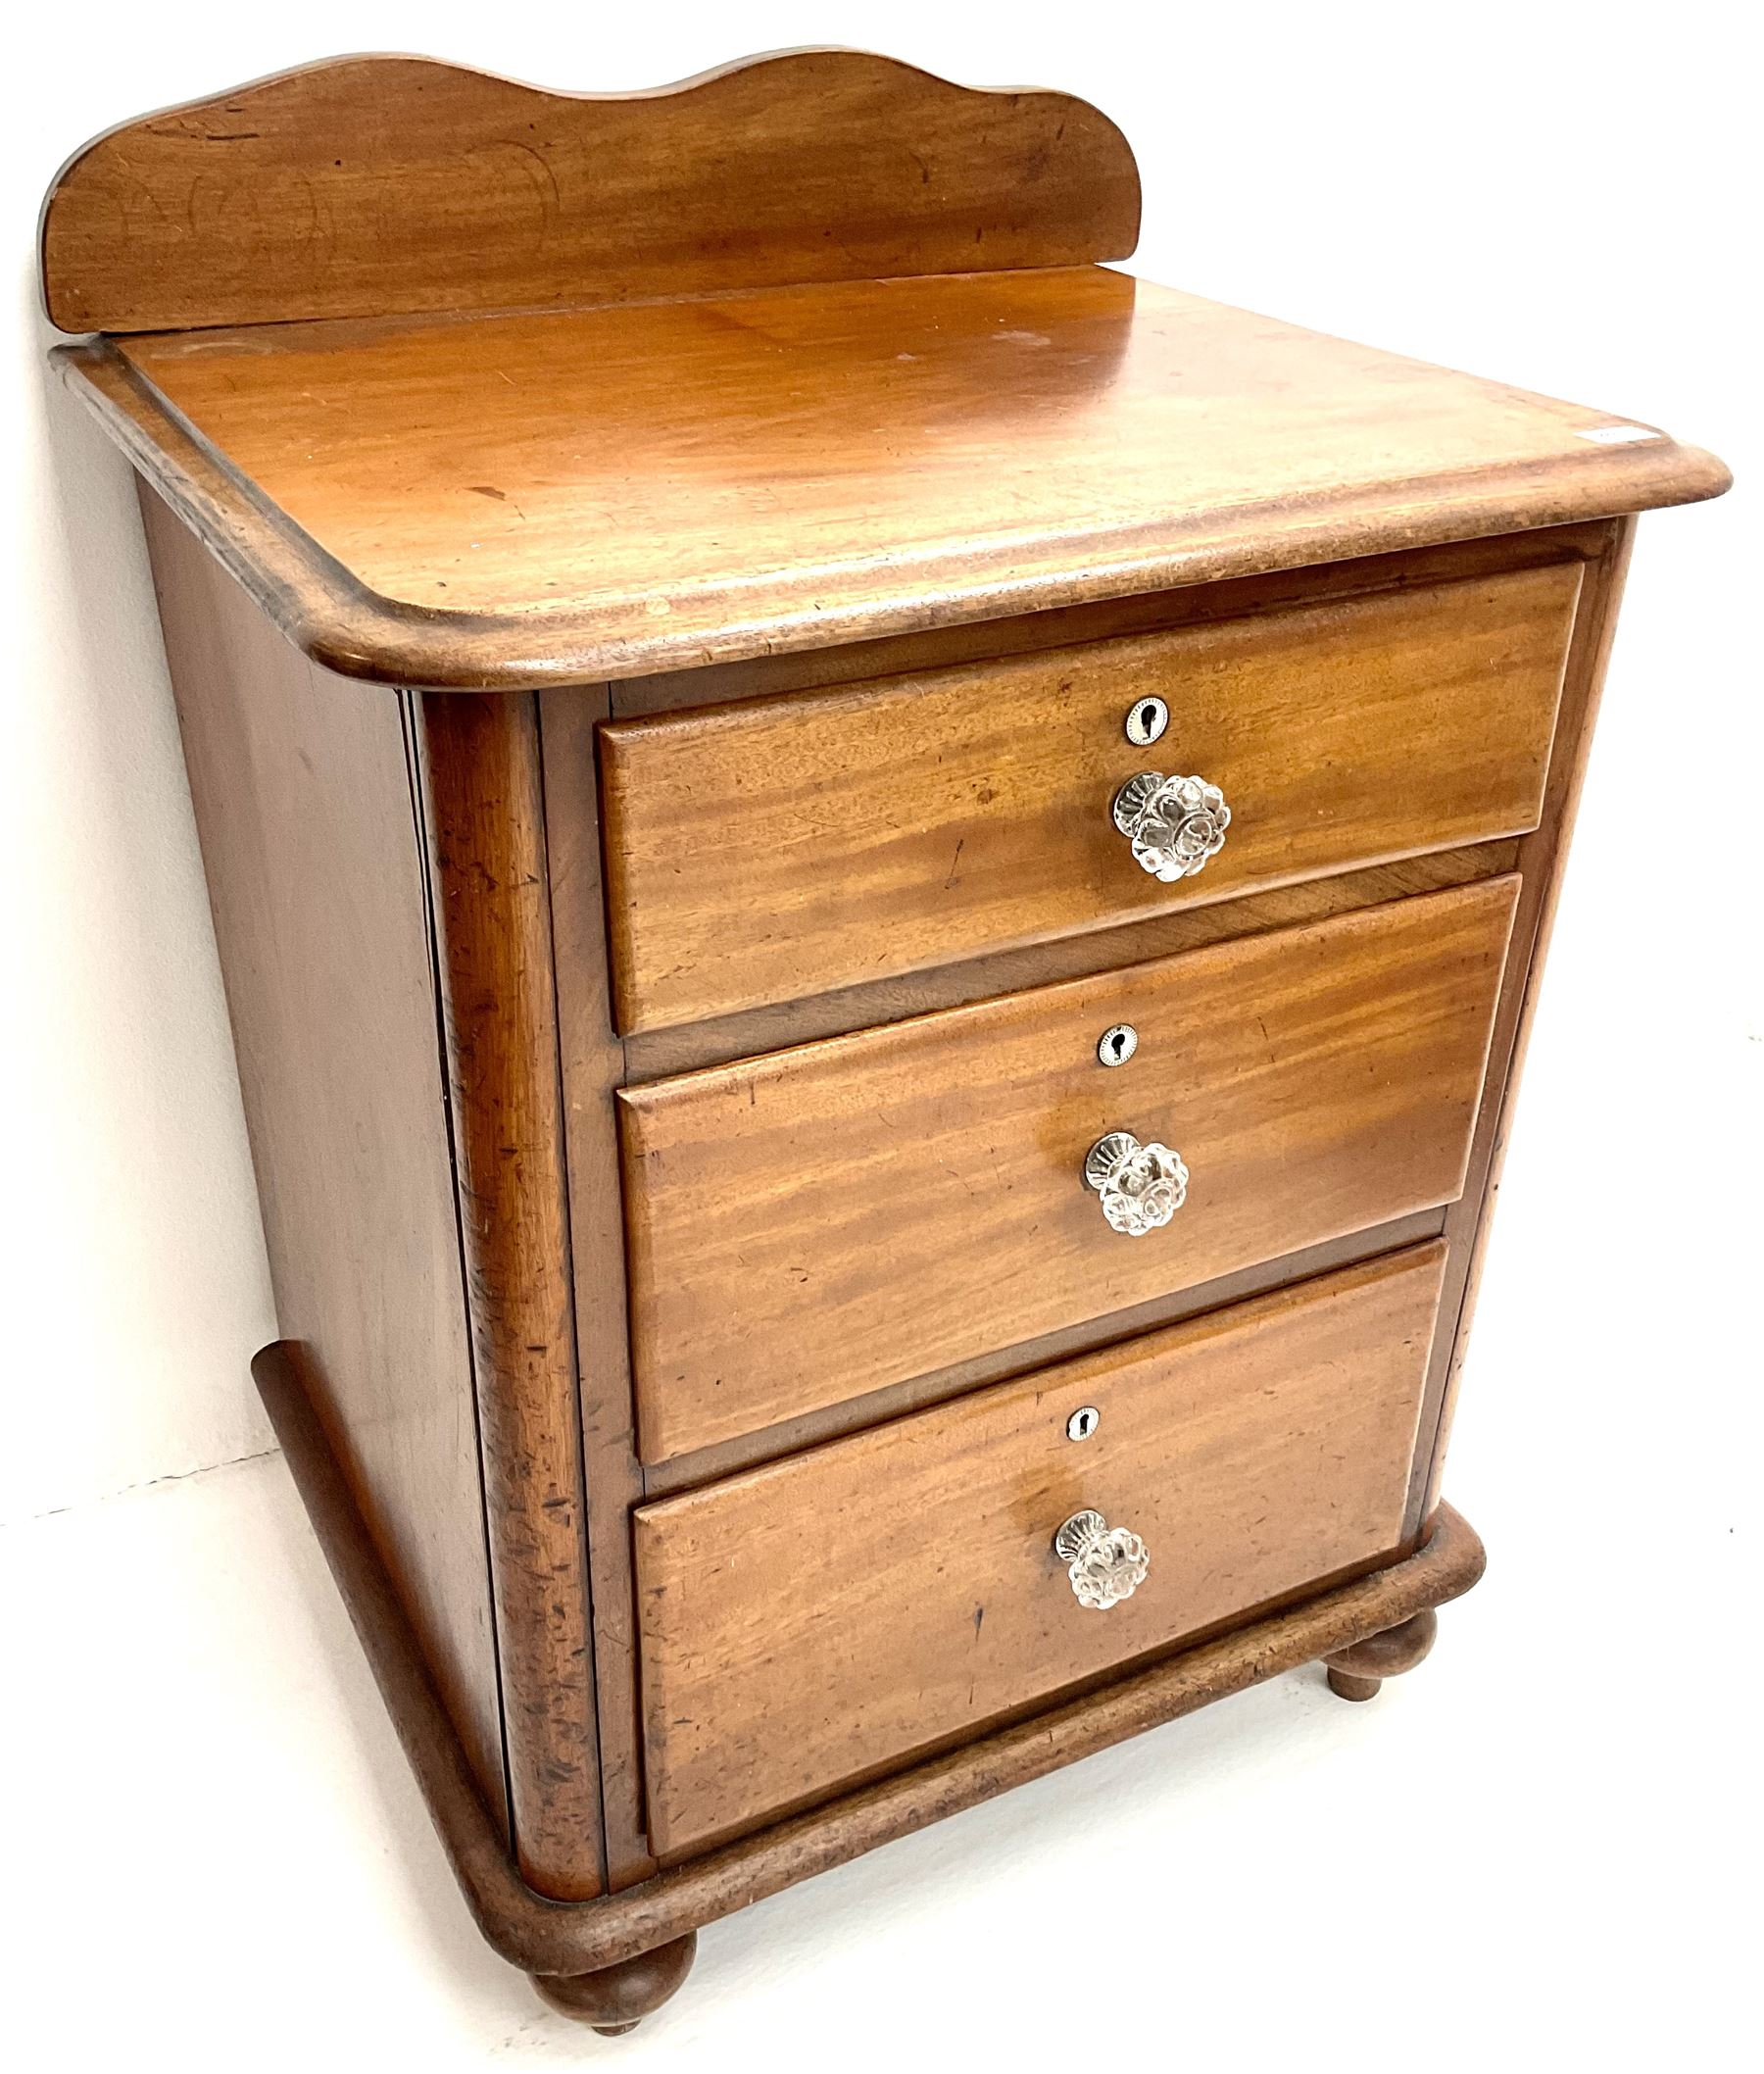 Victorian mahogany pedestal chest - Image 4 of 4